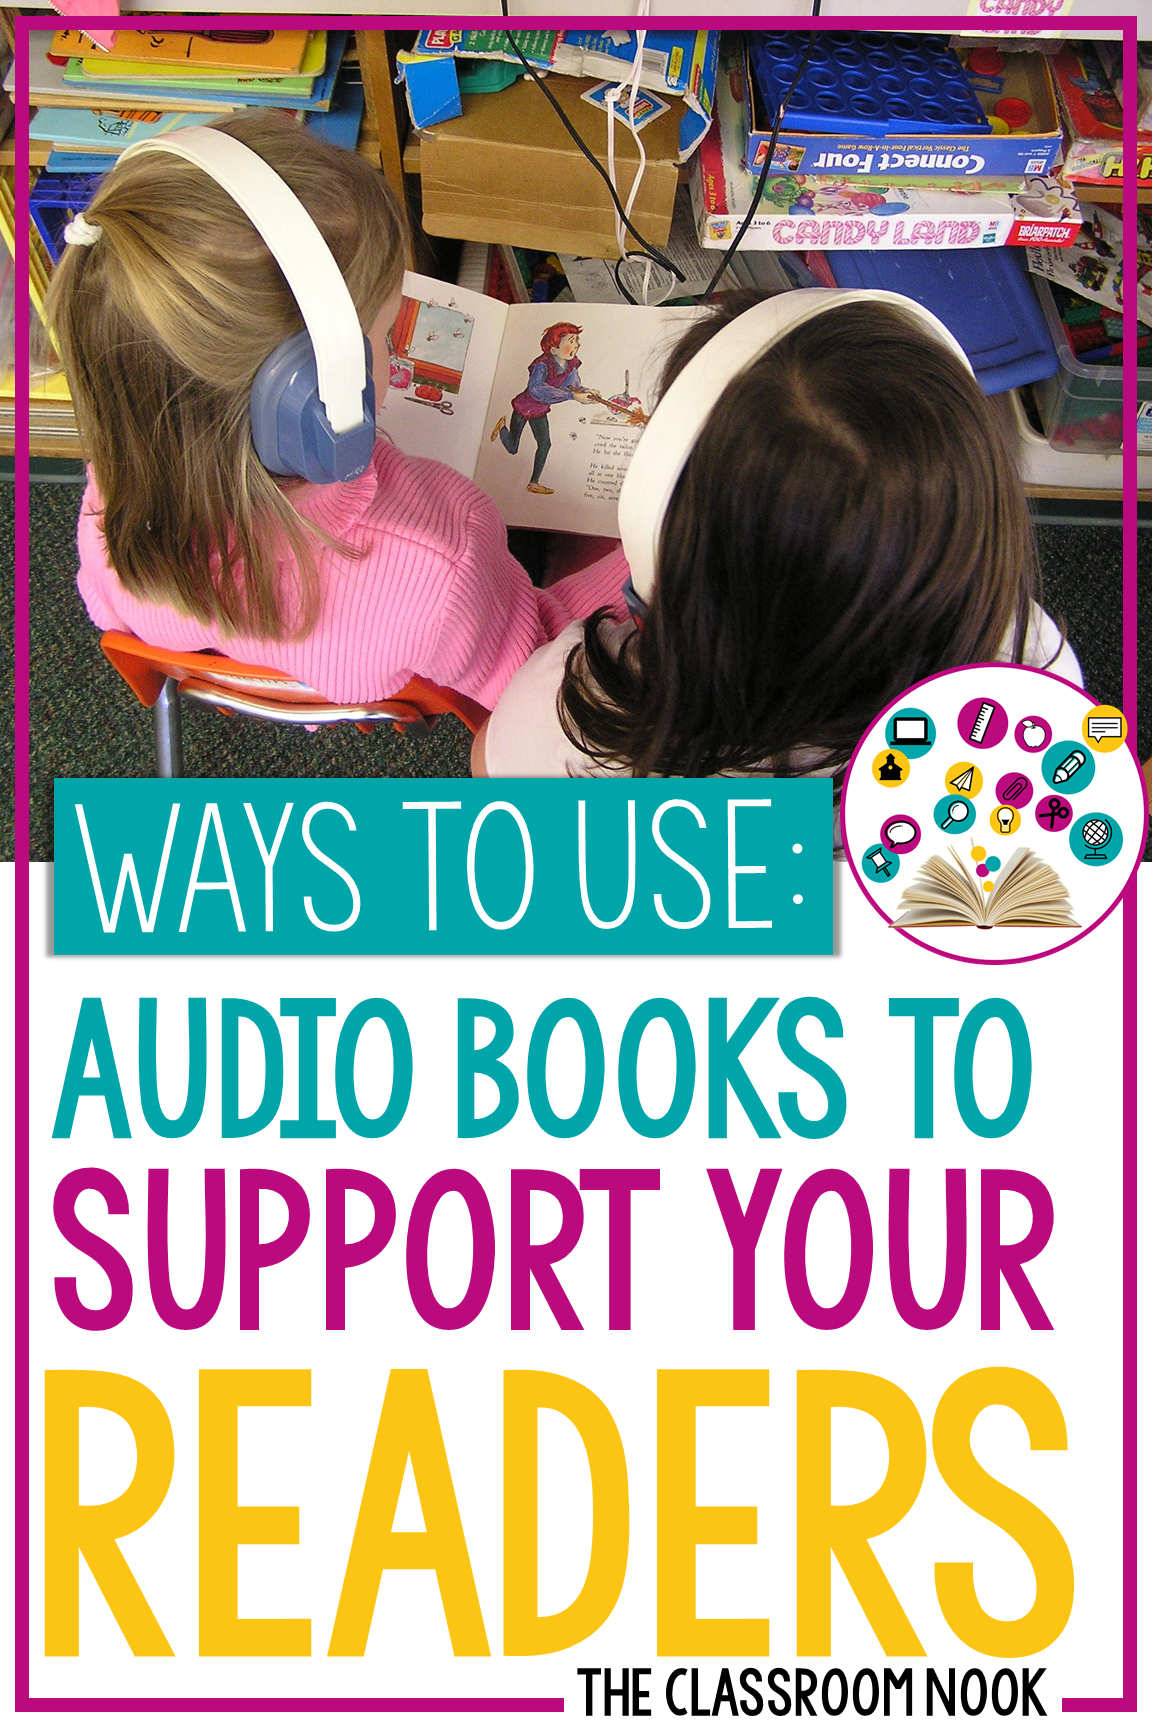 Ways to Use Audio Books to Support Your Readers — THE